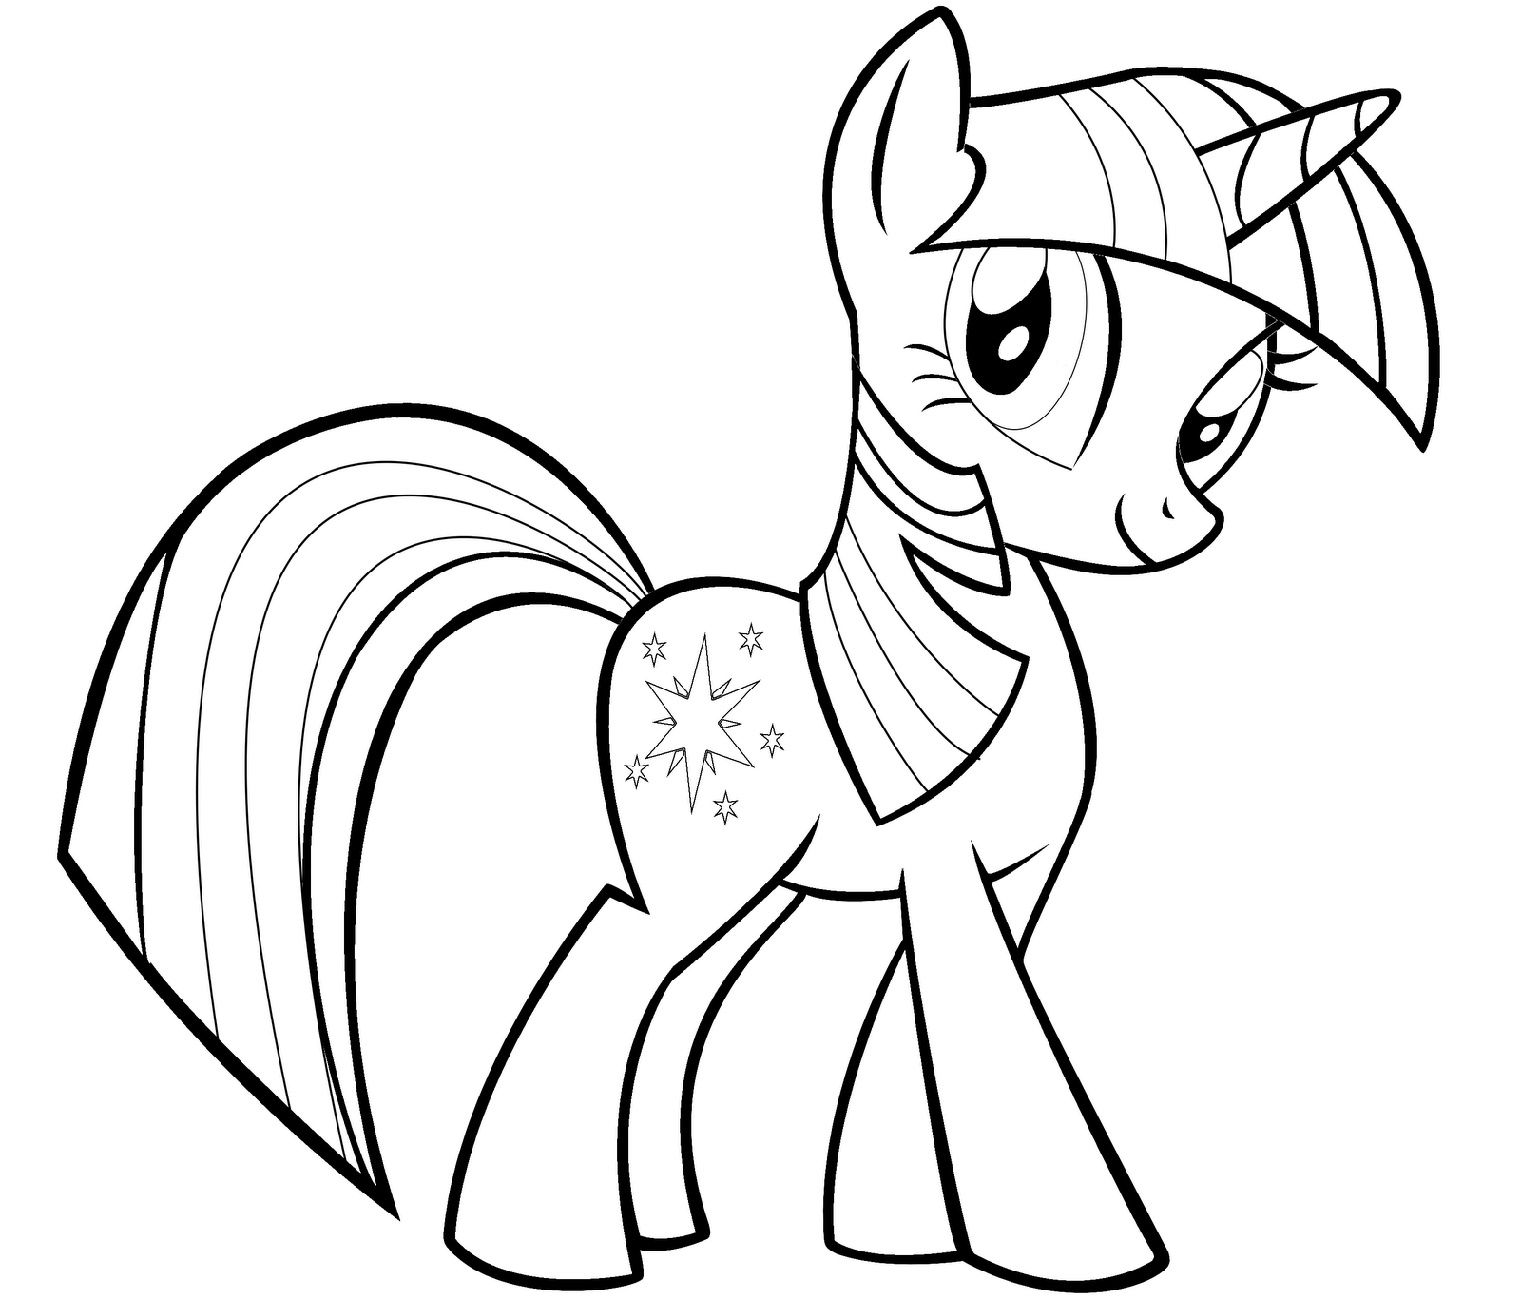 Alicorn Coloring Pages For Kids K5 Worksheets My Little Pony Coloring Coloring Pages My Little Pony Twilight